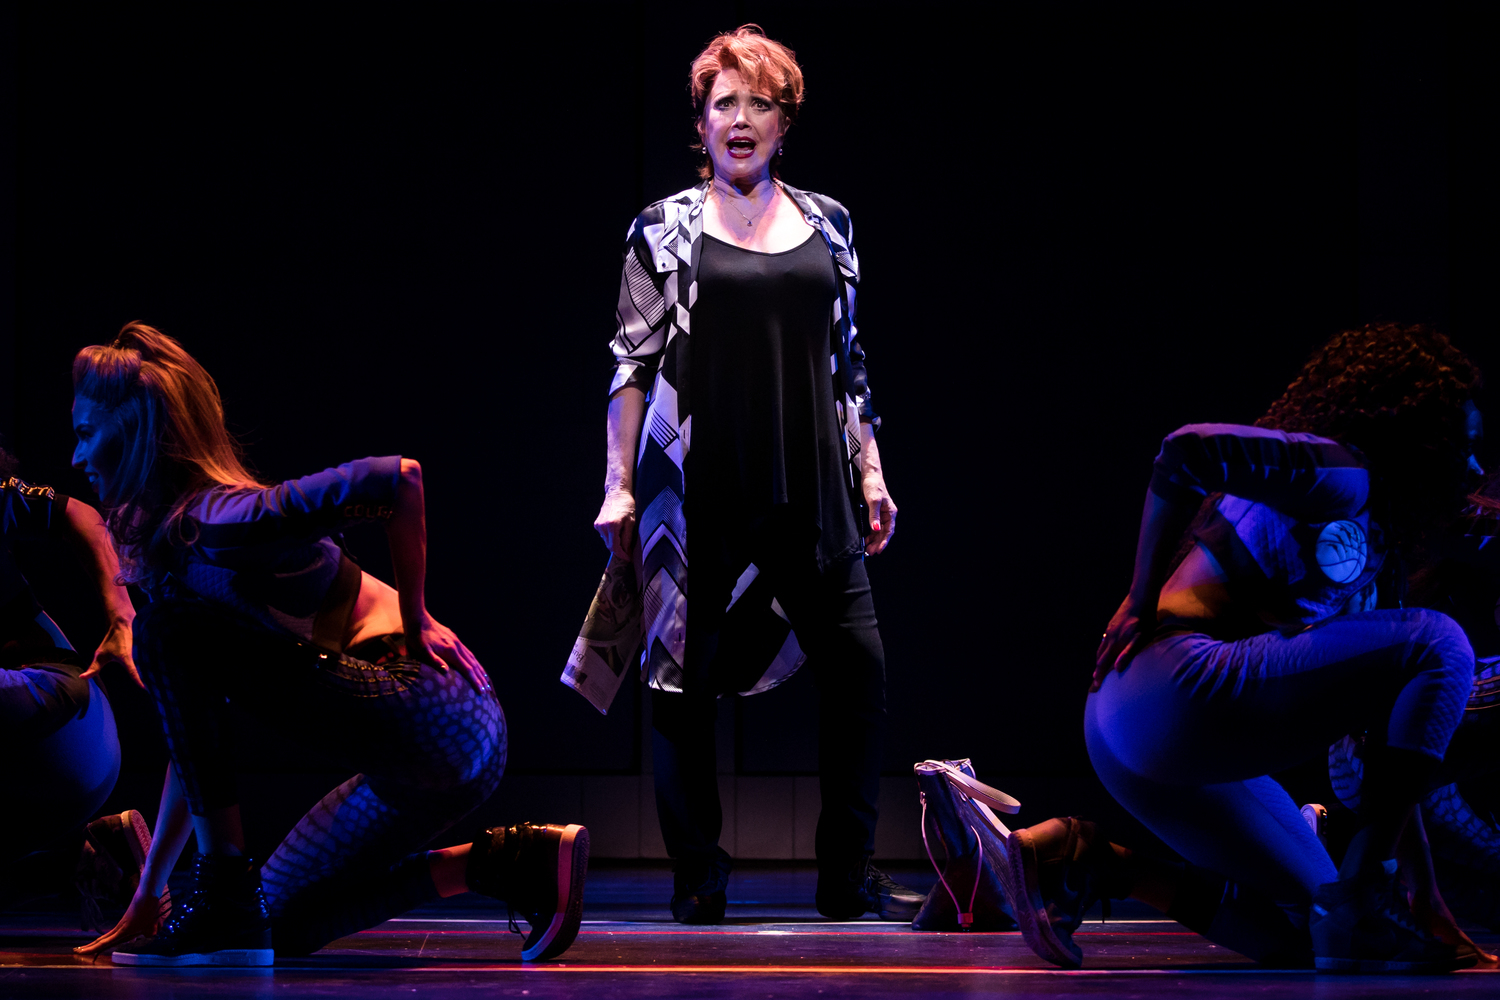 BWW Interview: Donna McKechnie on Dancing in HALF TIME at Paper Mill Playhouse